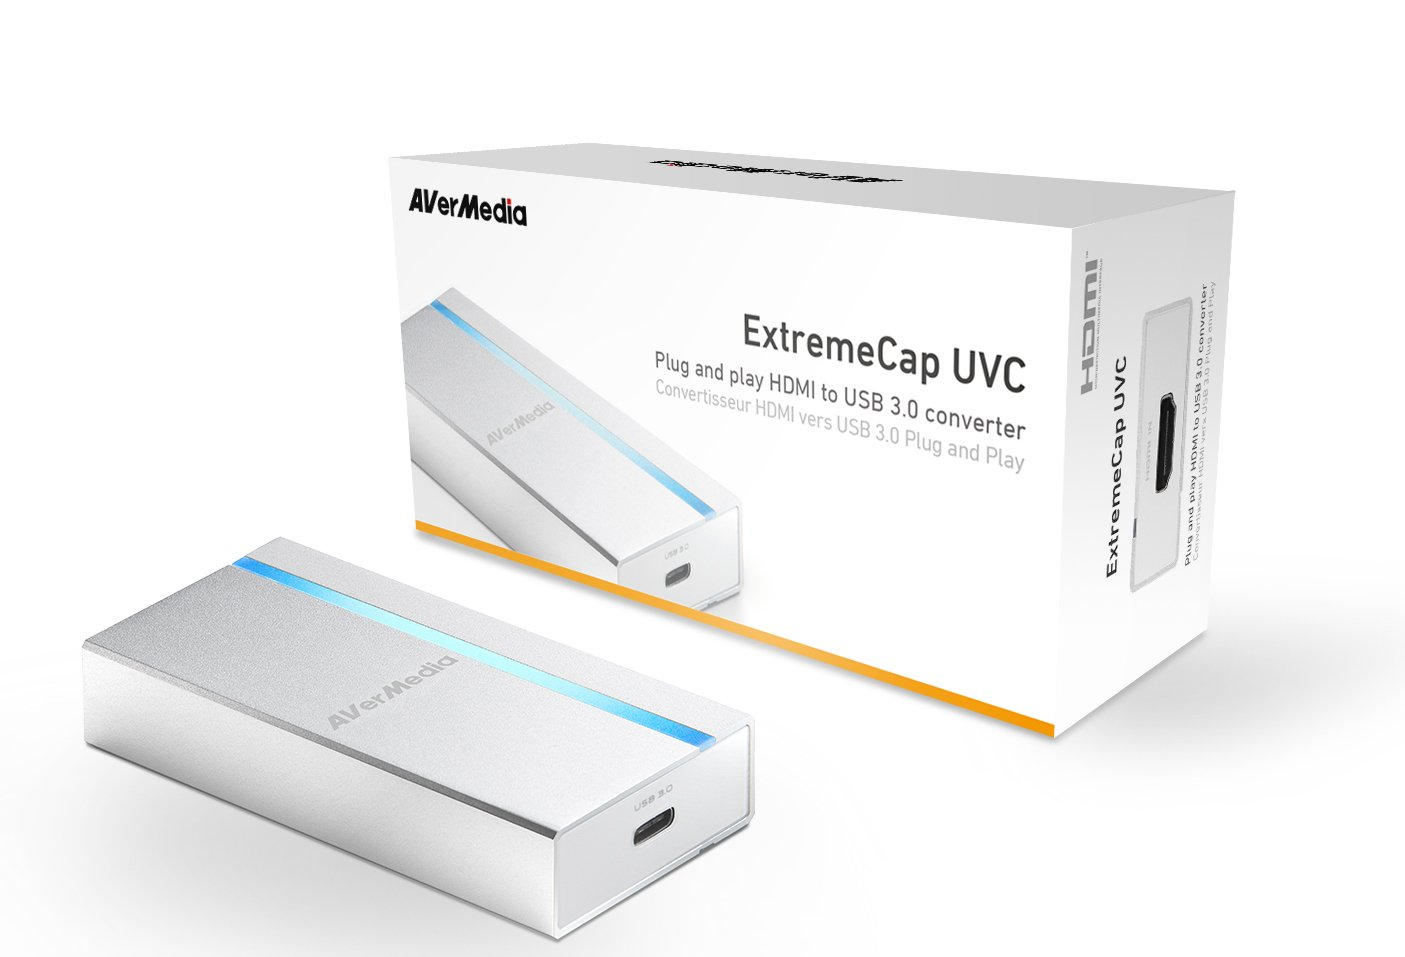 AVerMedia BU110 Ultra Mobile Broadcasting and Capture device UVC Pro USB 3.0 streaming on the go. 12 Months Wa